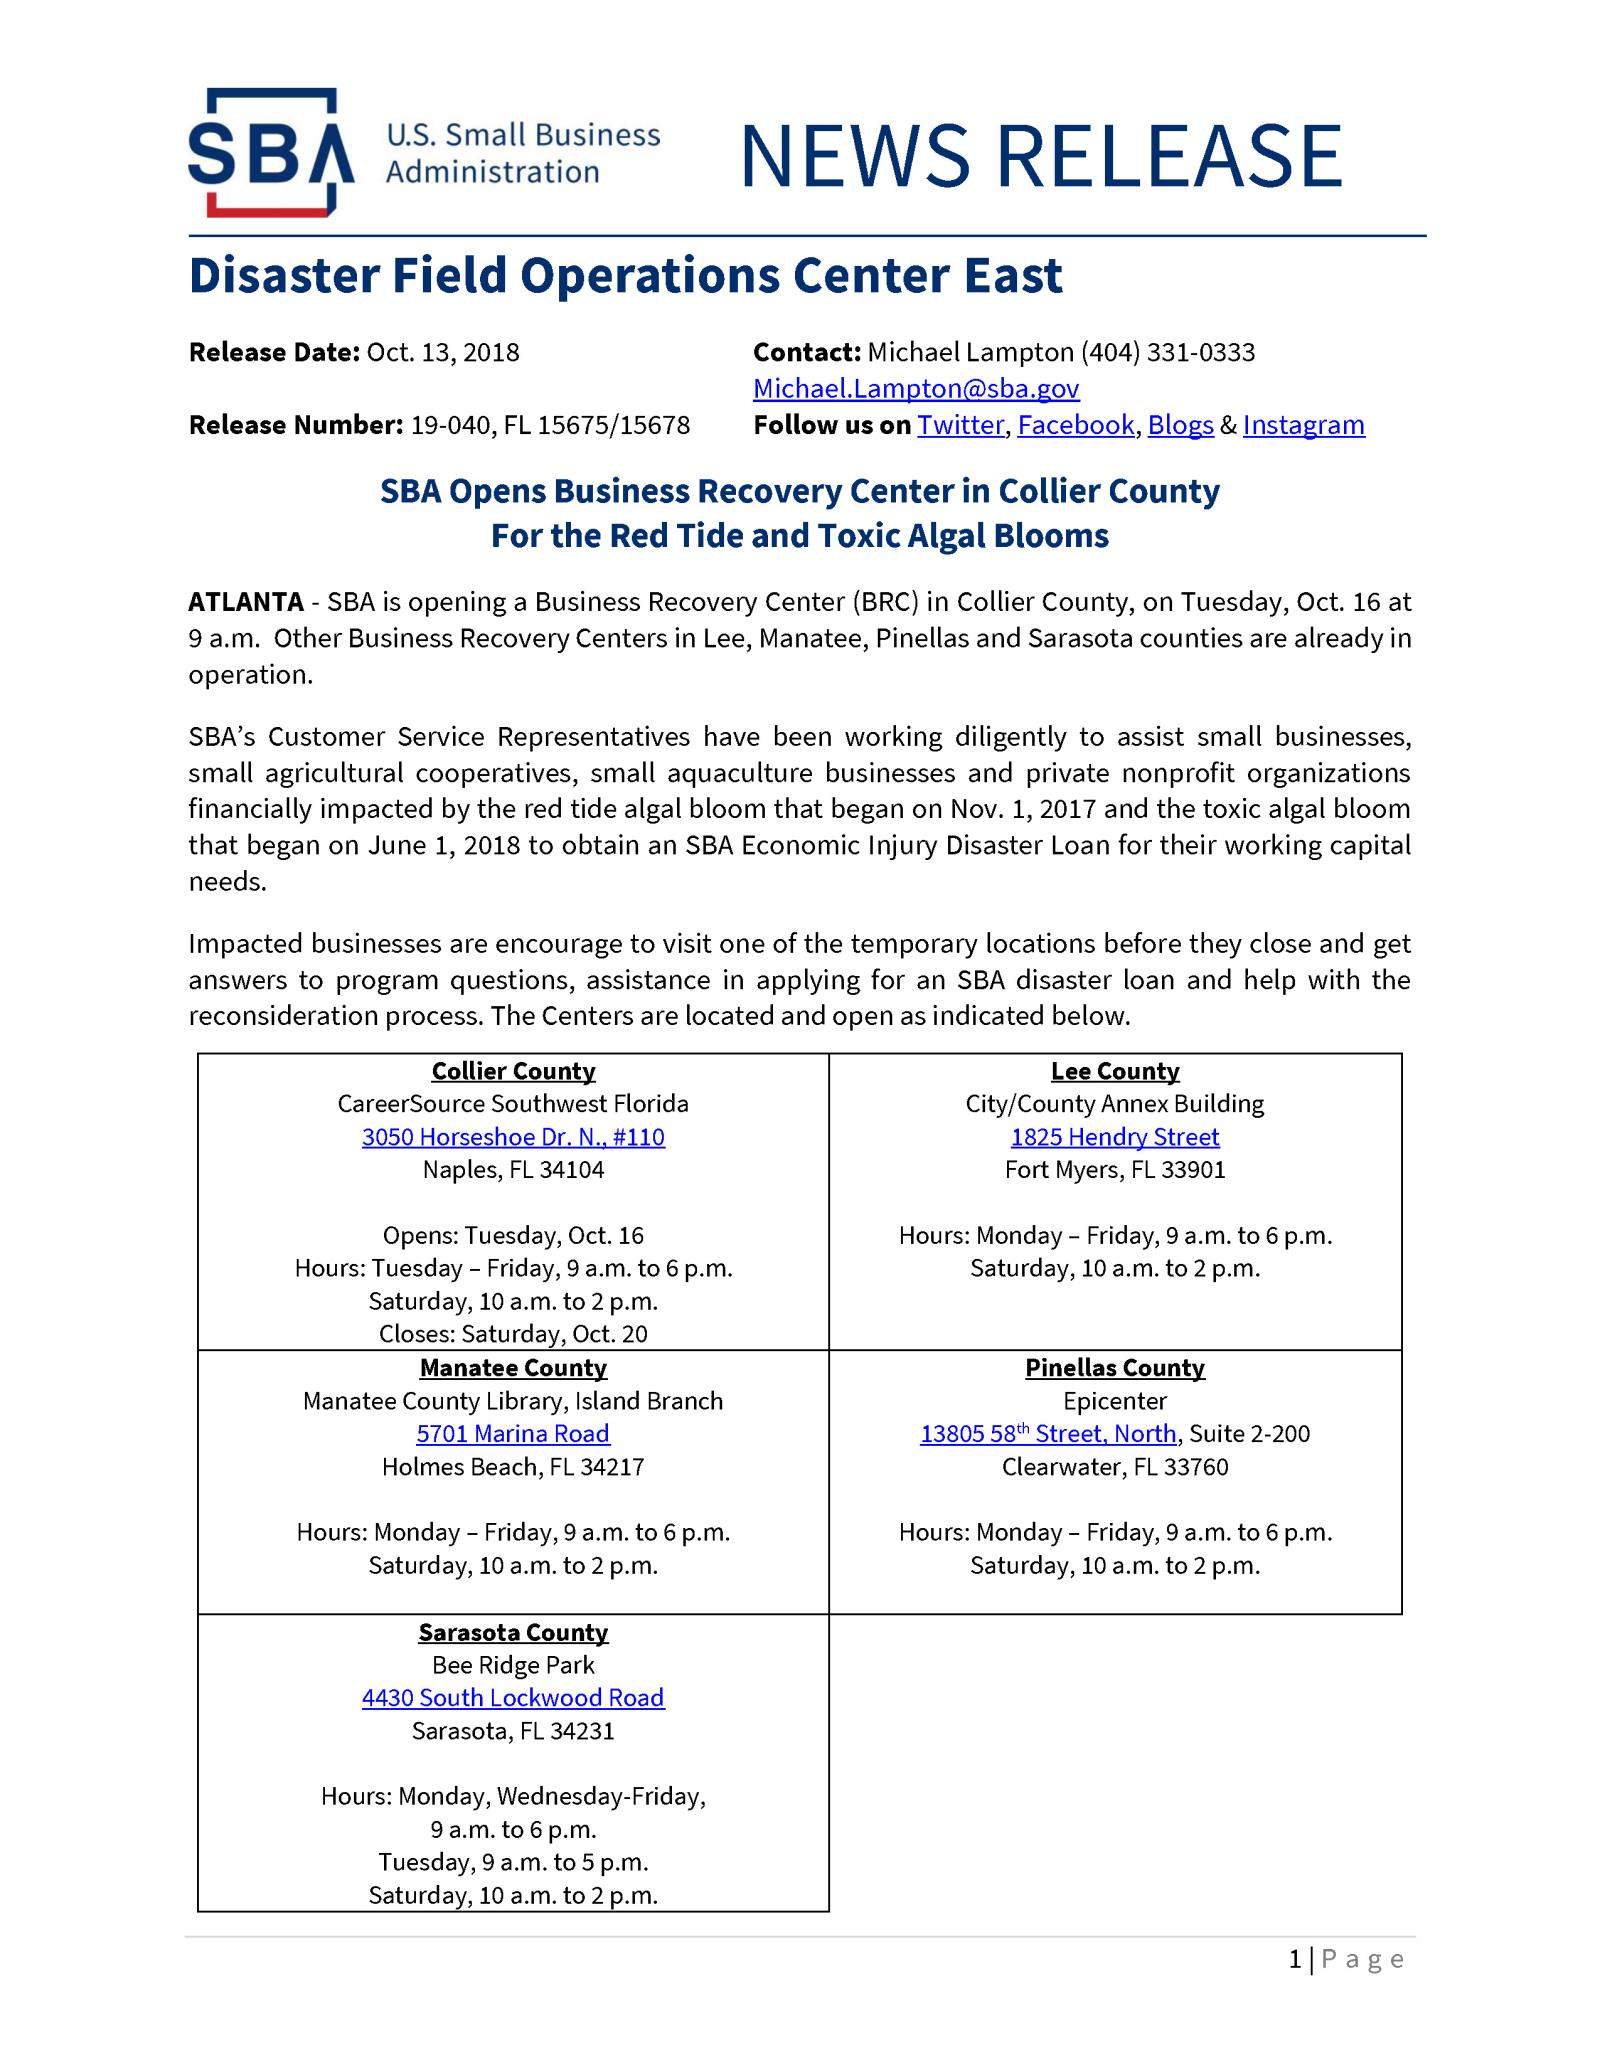 Disaster Field Operations Center East Collier County Fl